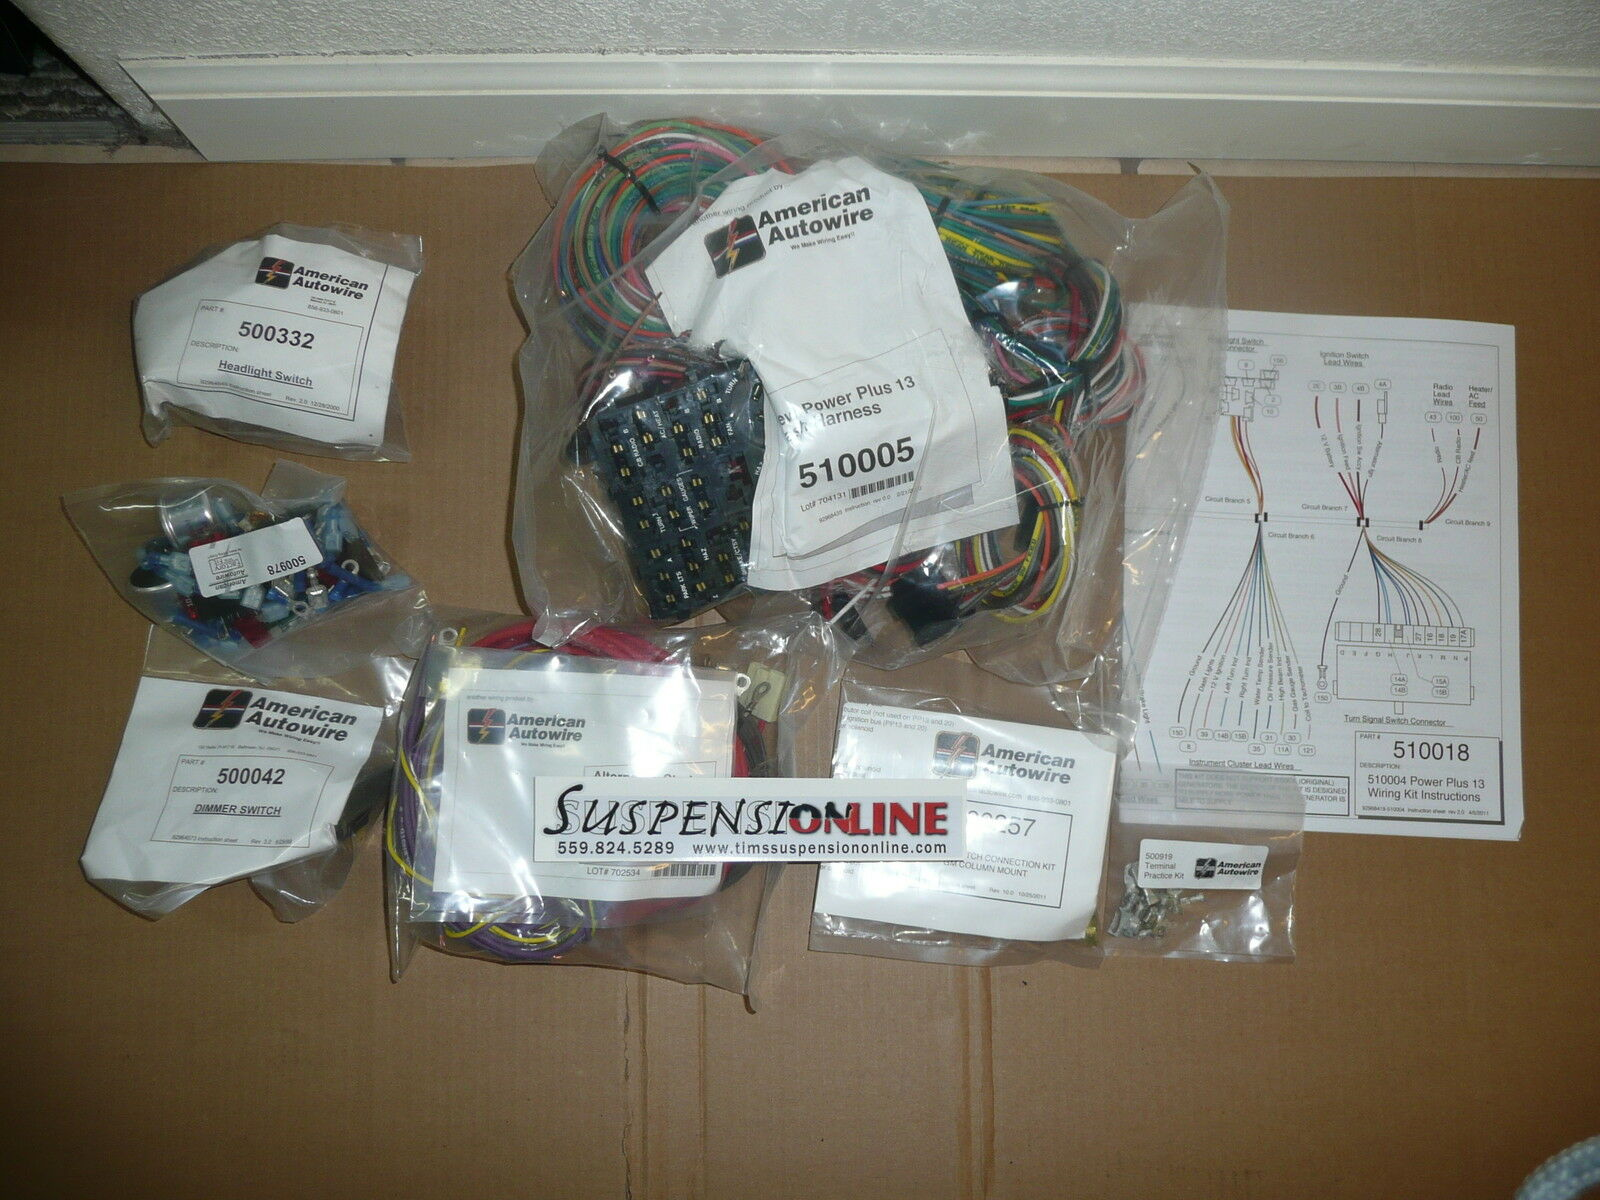 American Autowire Power Plus 13 510004 Street Rod Hot Universal Wiring Harness Kit 1 Of 3only 2 Available See More